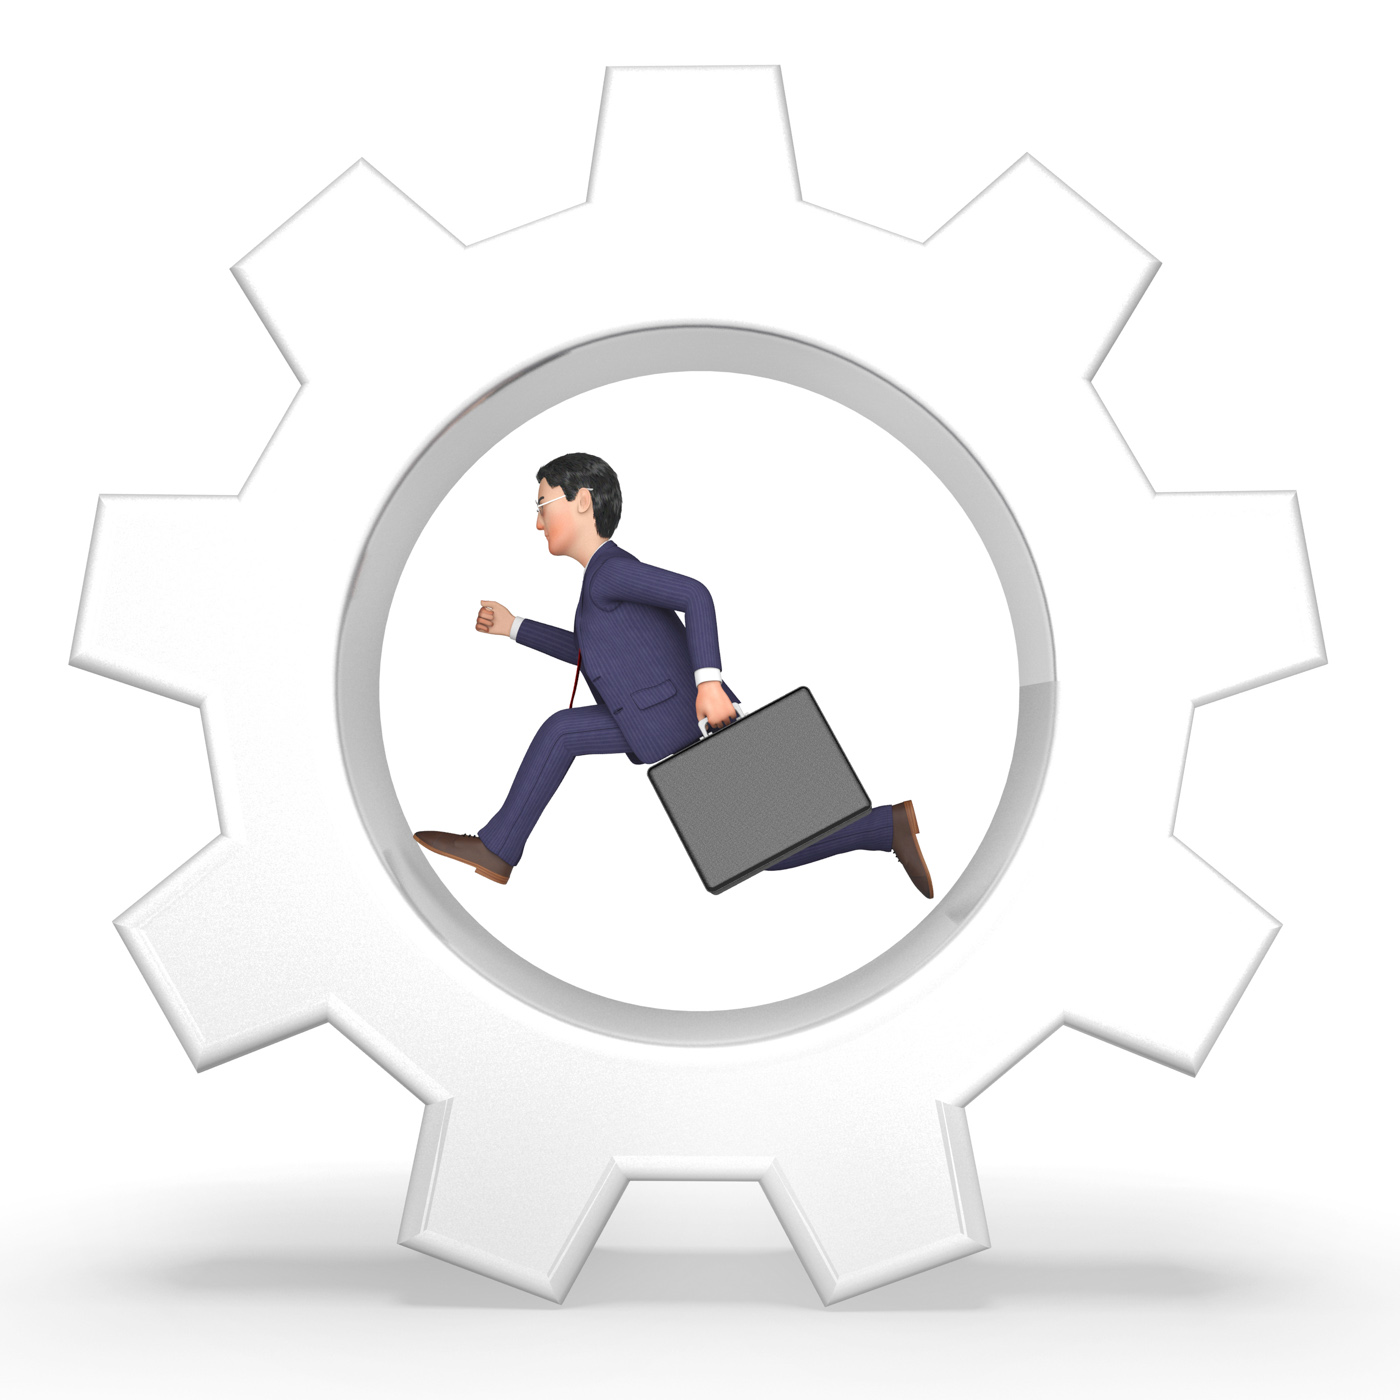 Rat Race Represents Mind Numbing And Businessman 3d Rendering, Sprinting, Ratrace, Routine, Runner, HQ Photo